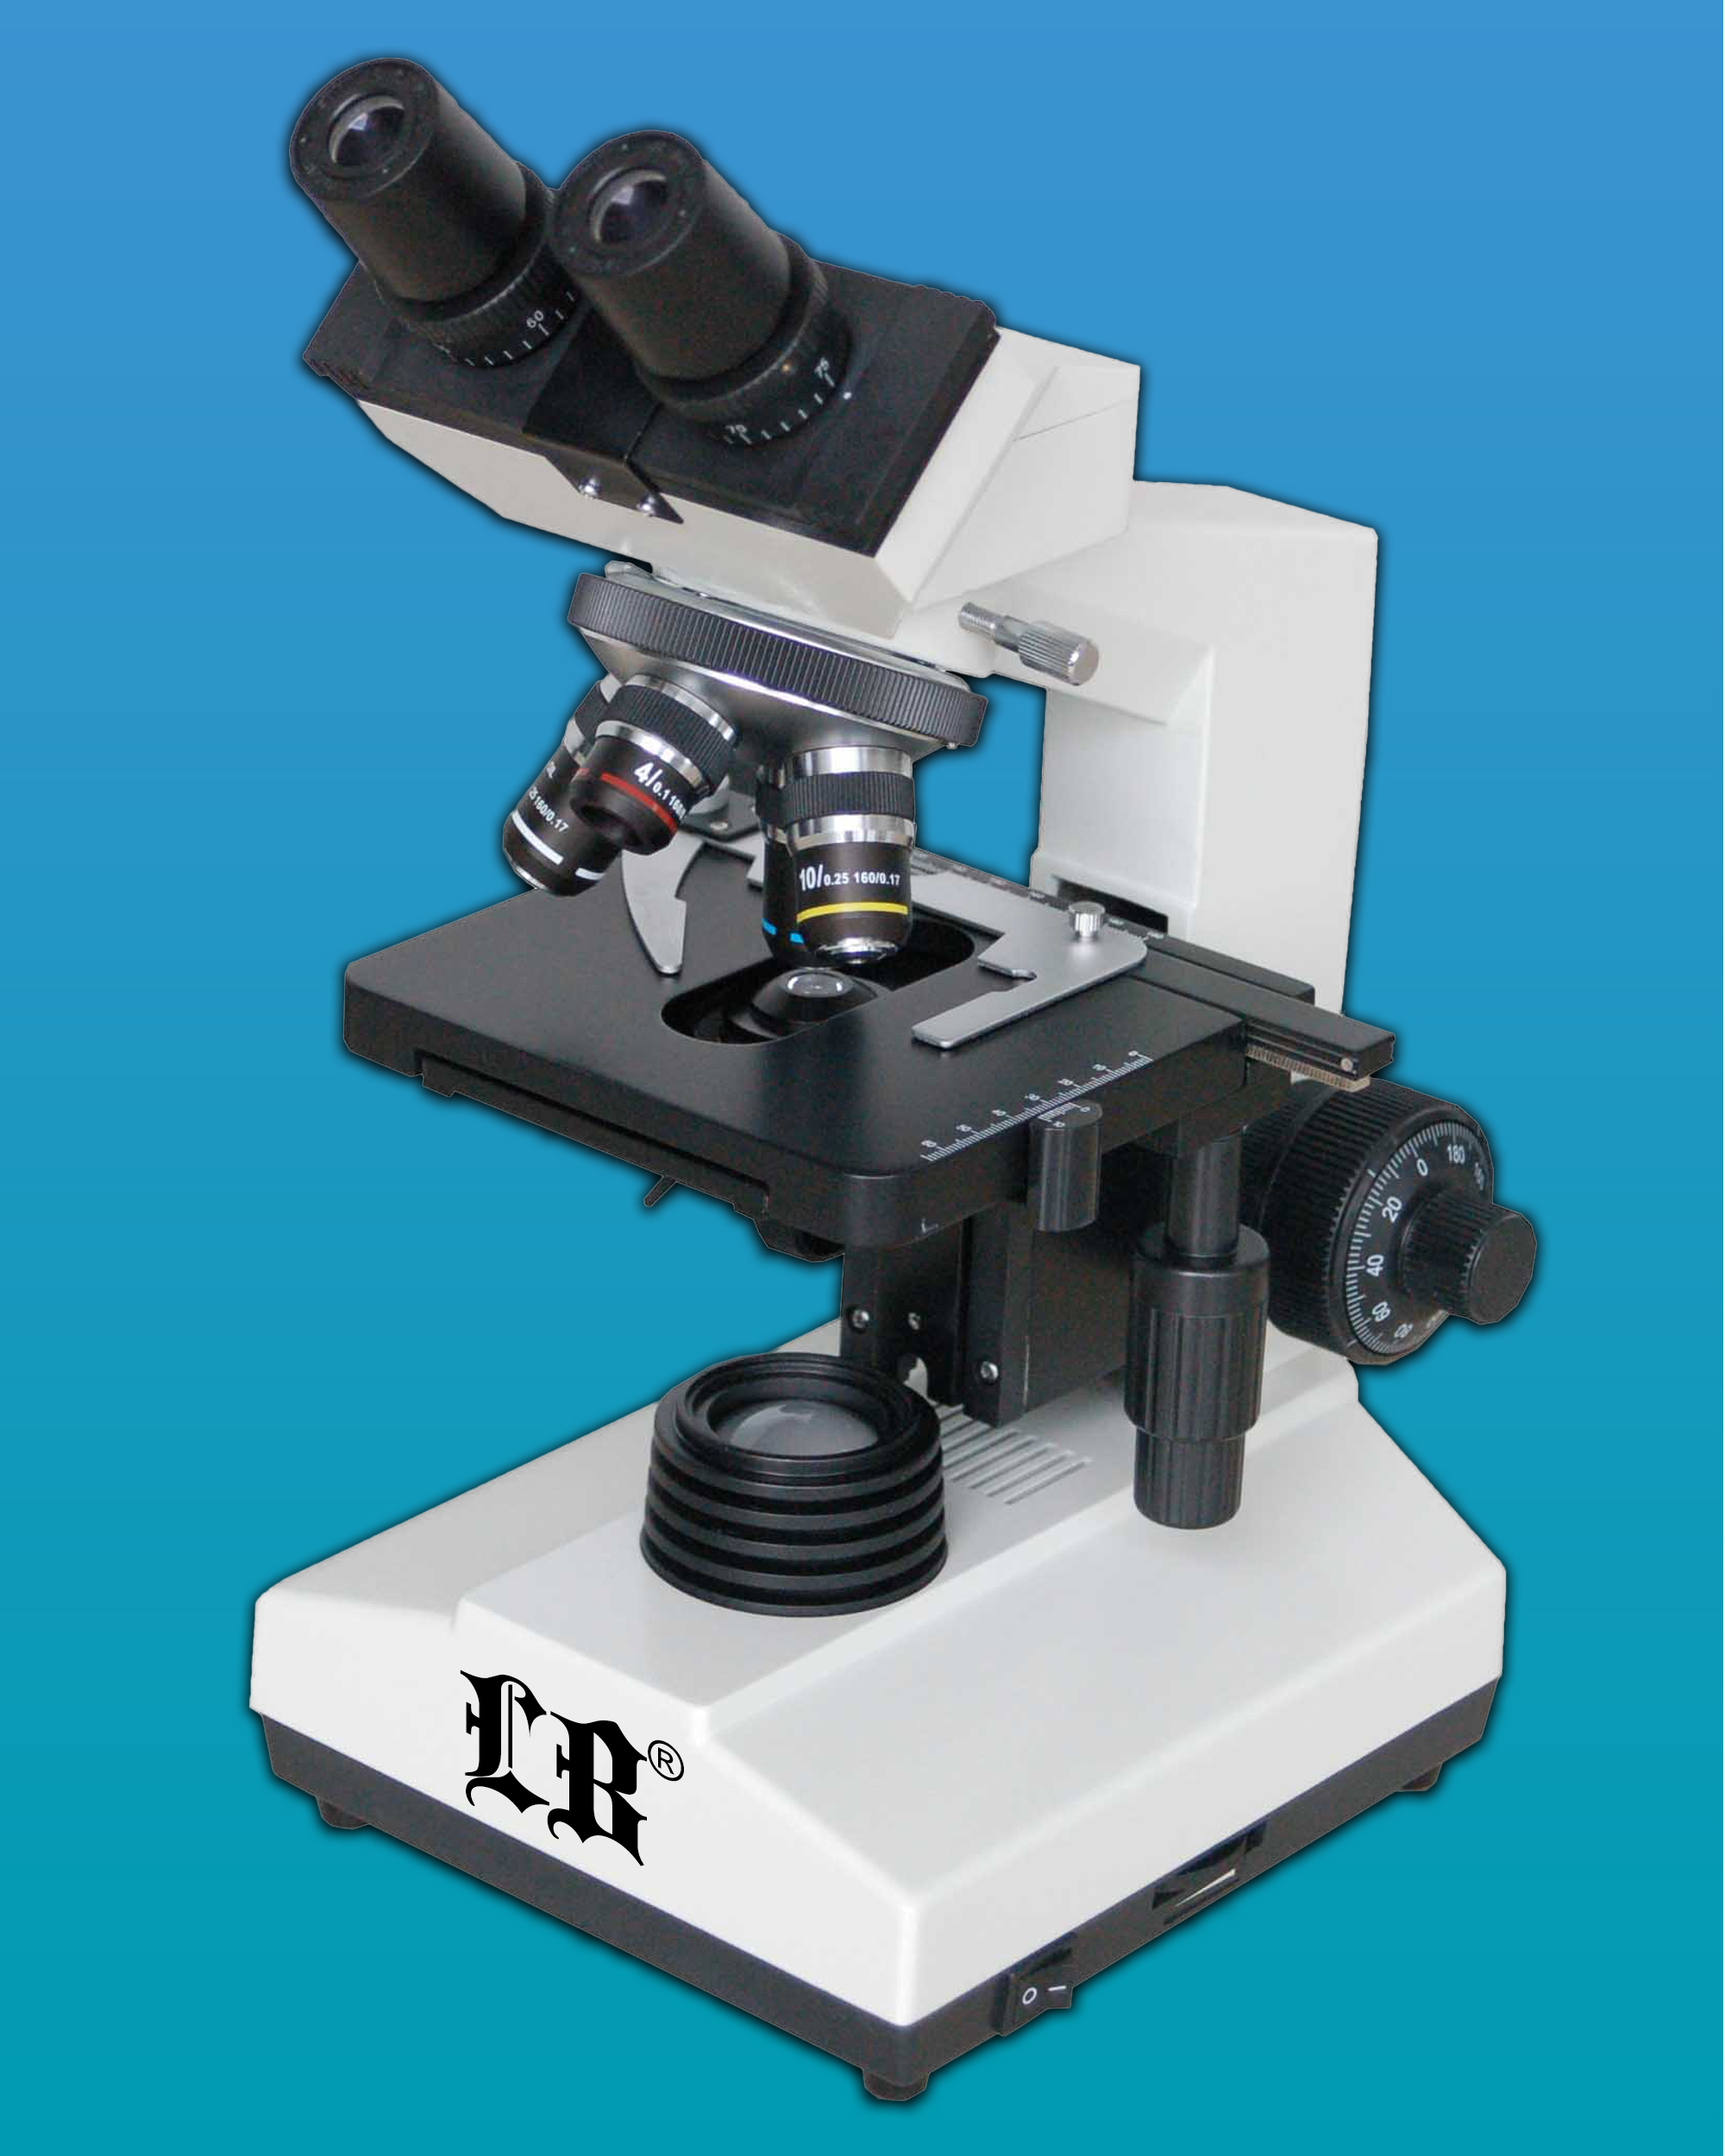 [LB-234] Biological Microscope w/ Advanced Alignment, LED Illumination & 4 Achromatic Objectives